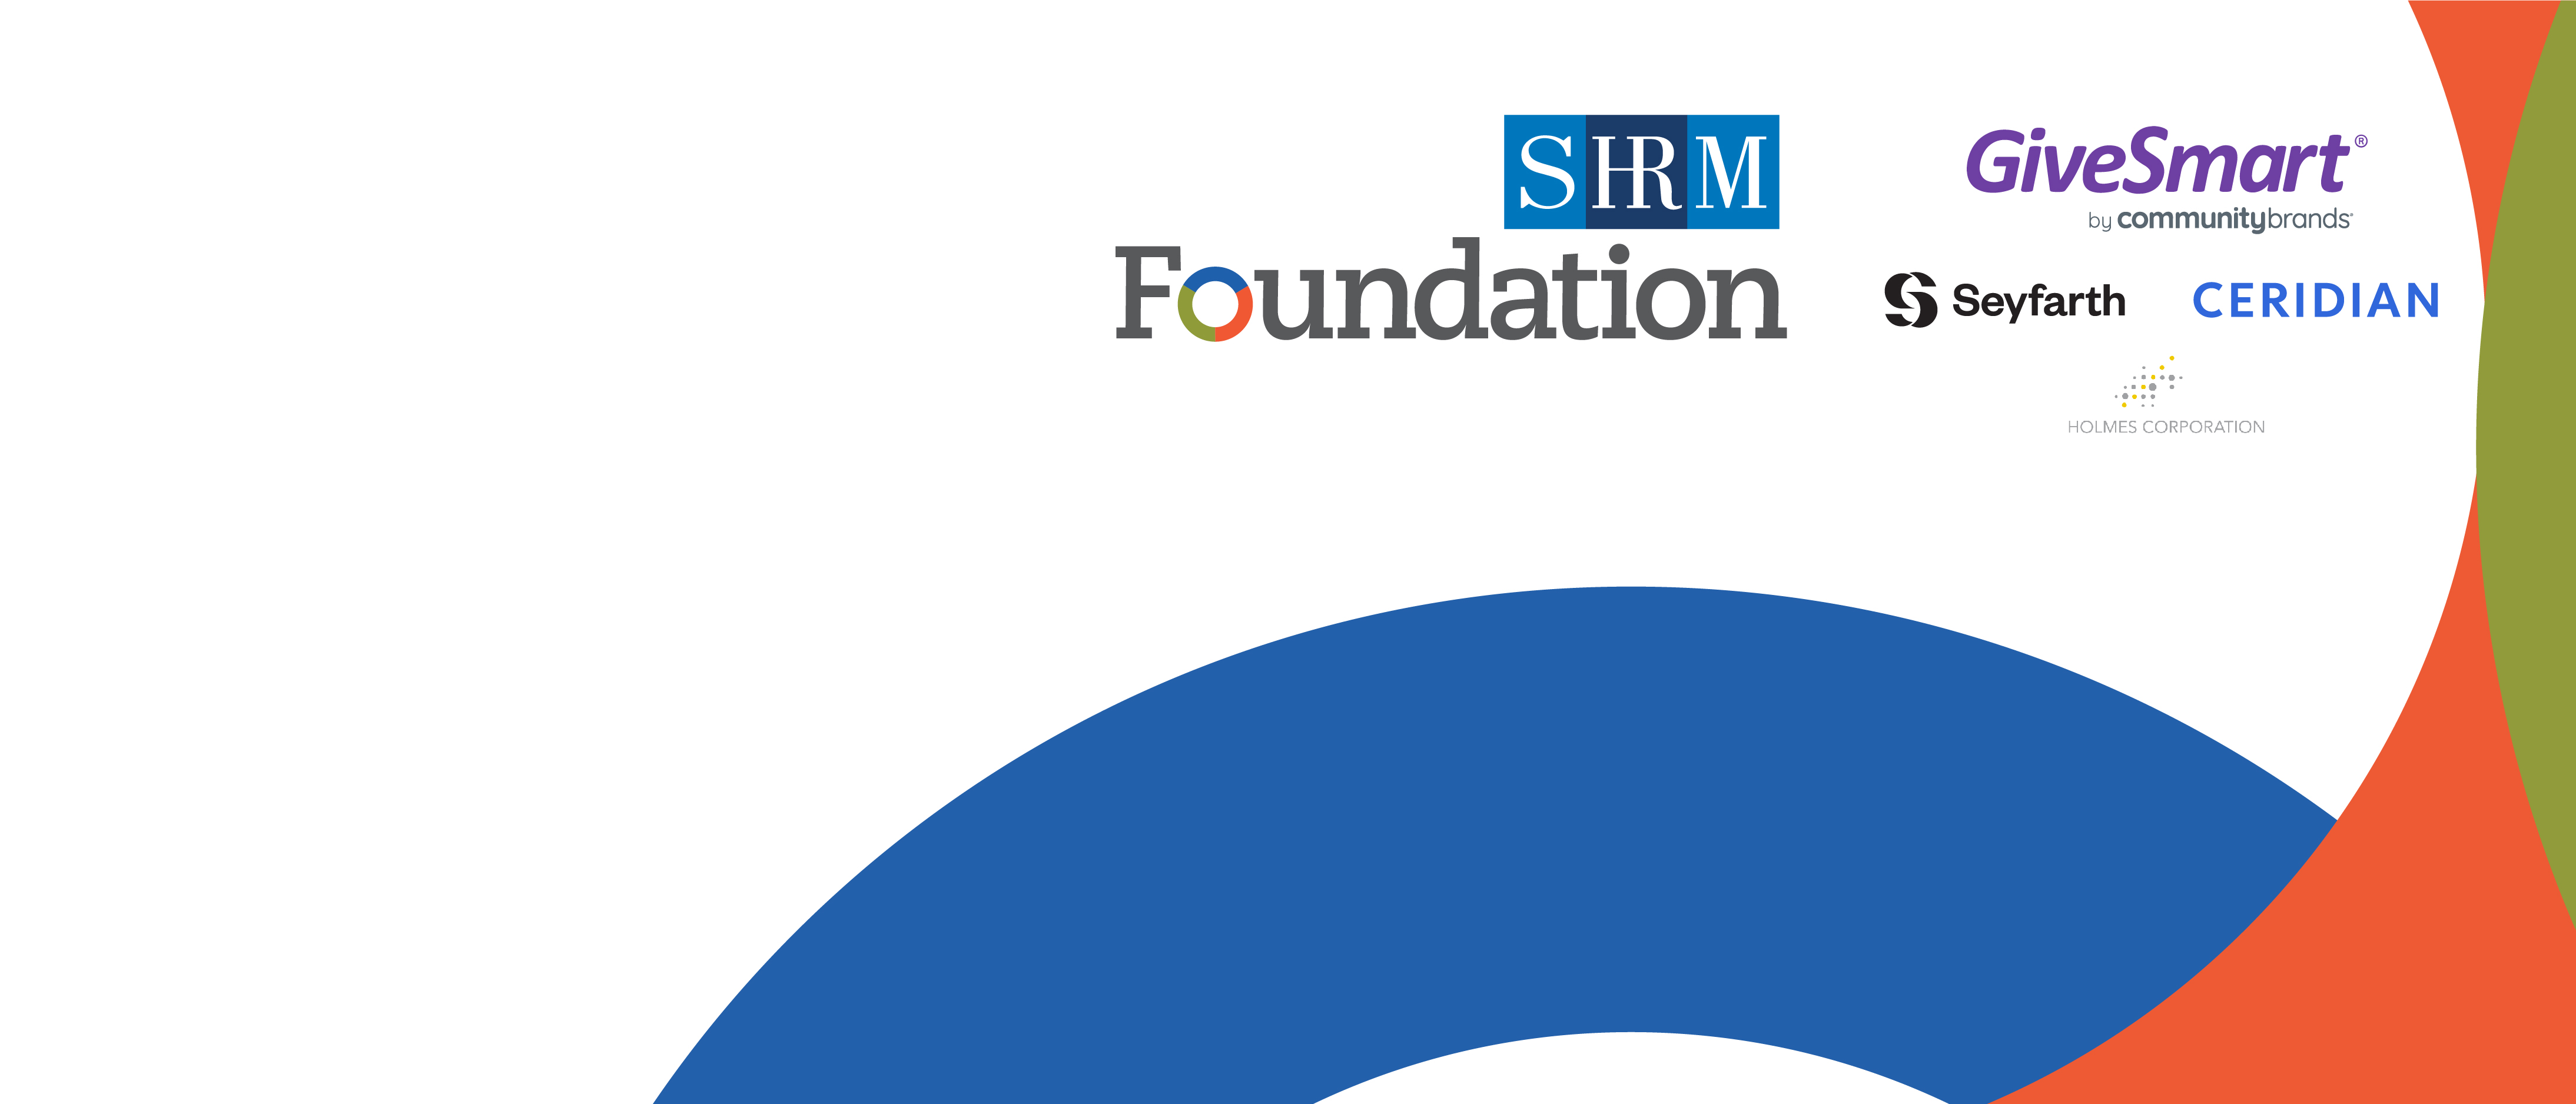 SHRM Foundation/GiveSmart